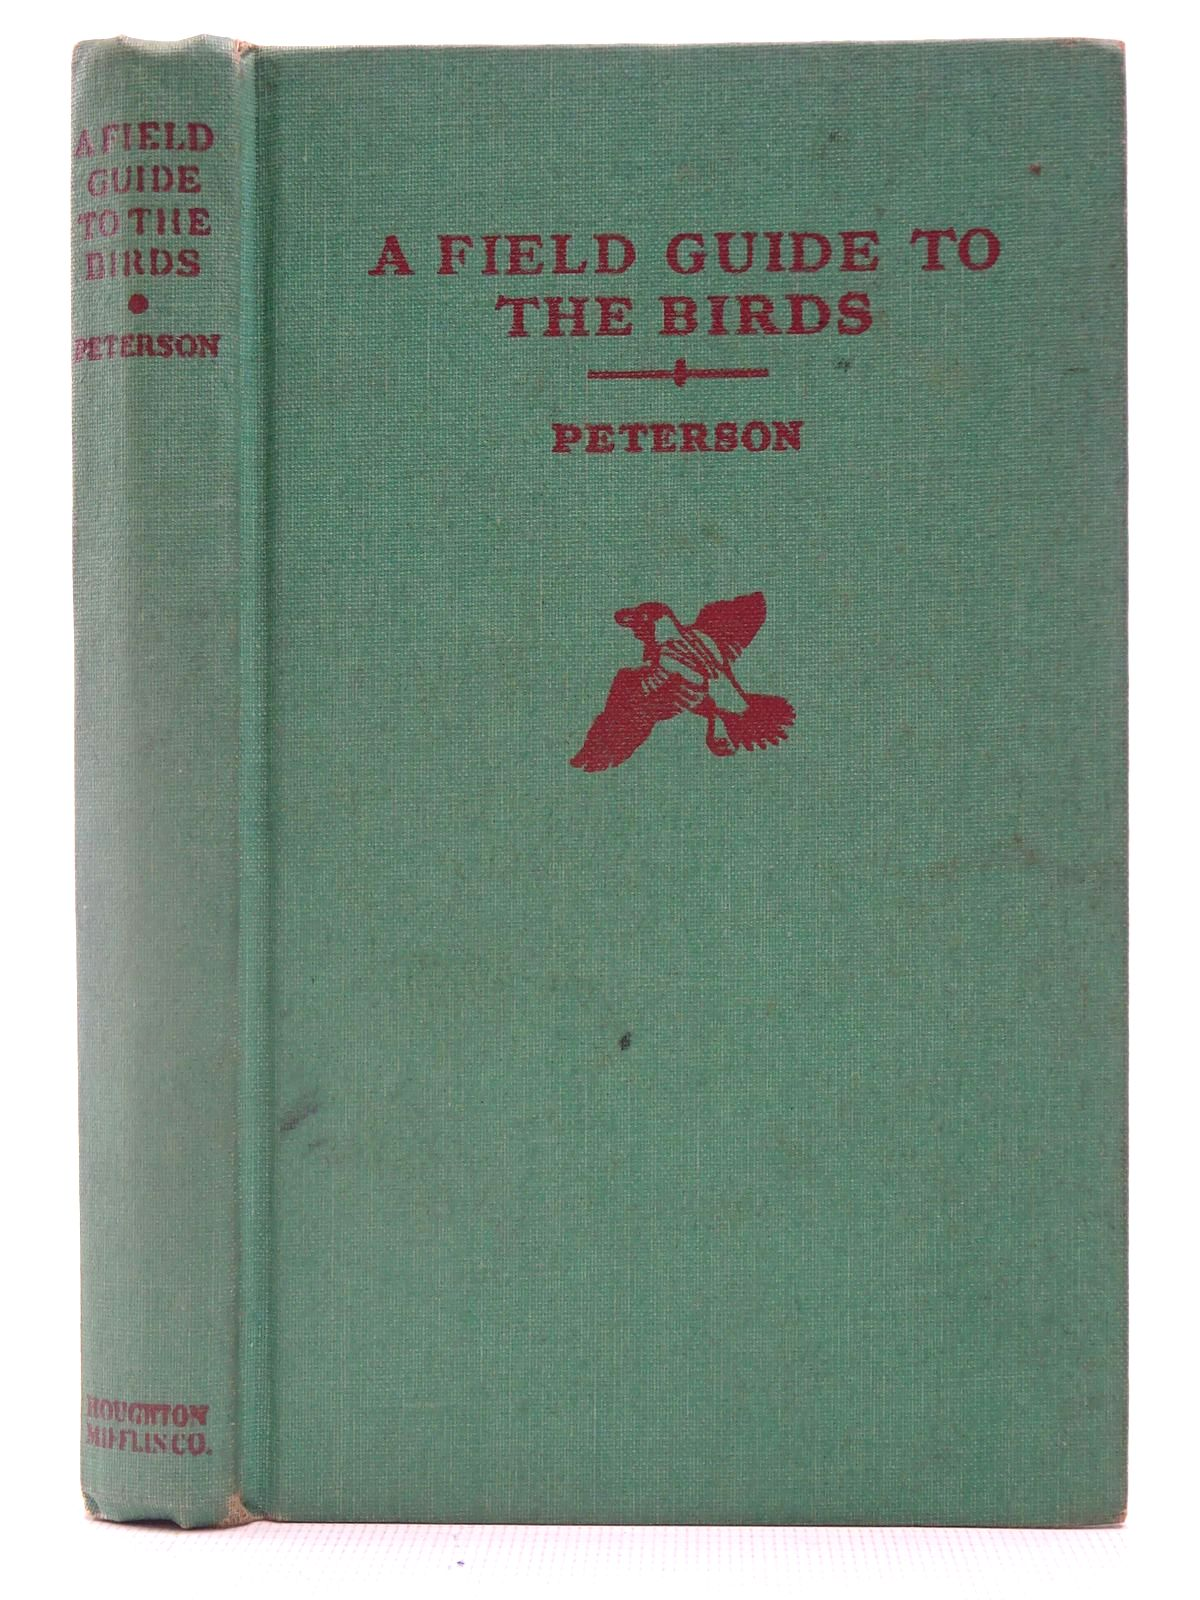 Photo of A FIELD GUIDE TO THE BIRDS GIVING FIELD MARKS OF ALL SPECIES FOUND EAST OF THE ROCKIES written by Peterson, Roger Tory illustrated by Peterson, Roger Tory published by Houghton Mifflin Company (STOCK CODE: 2127009)  for sale by Stella & Rose's Books